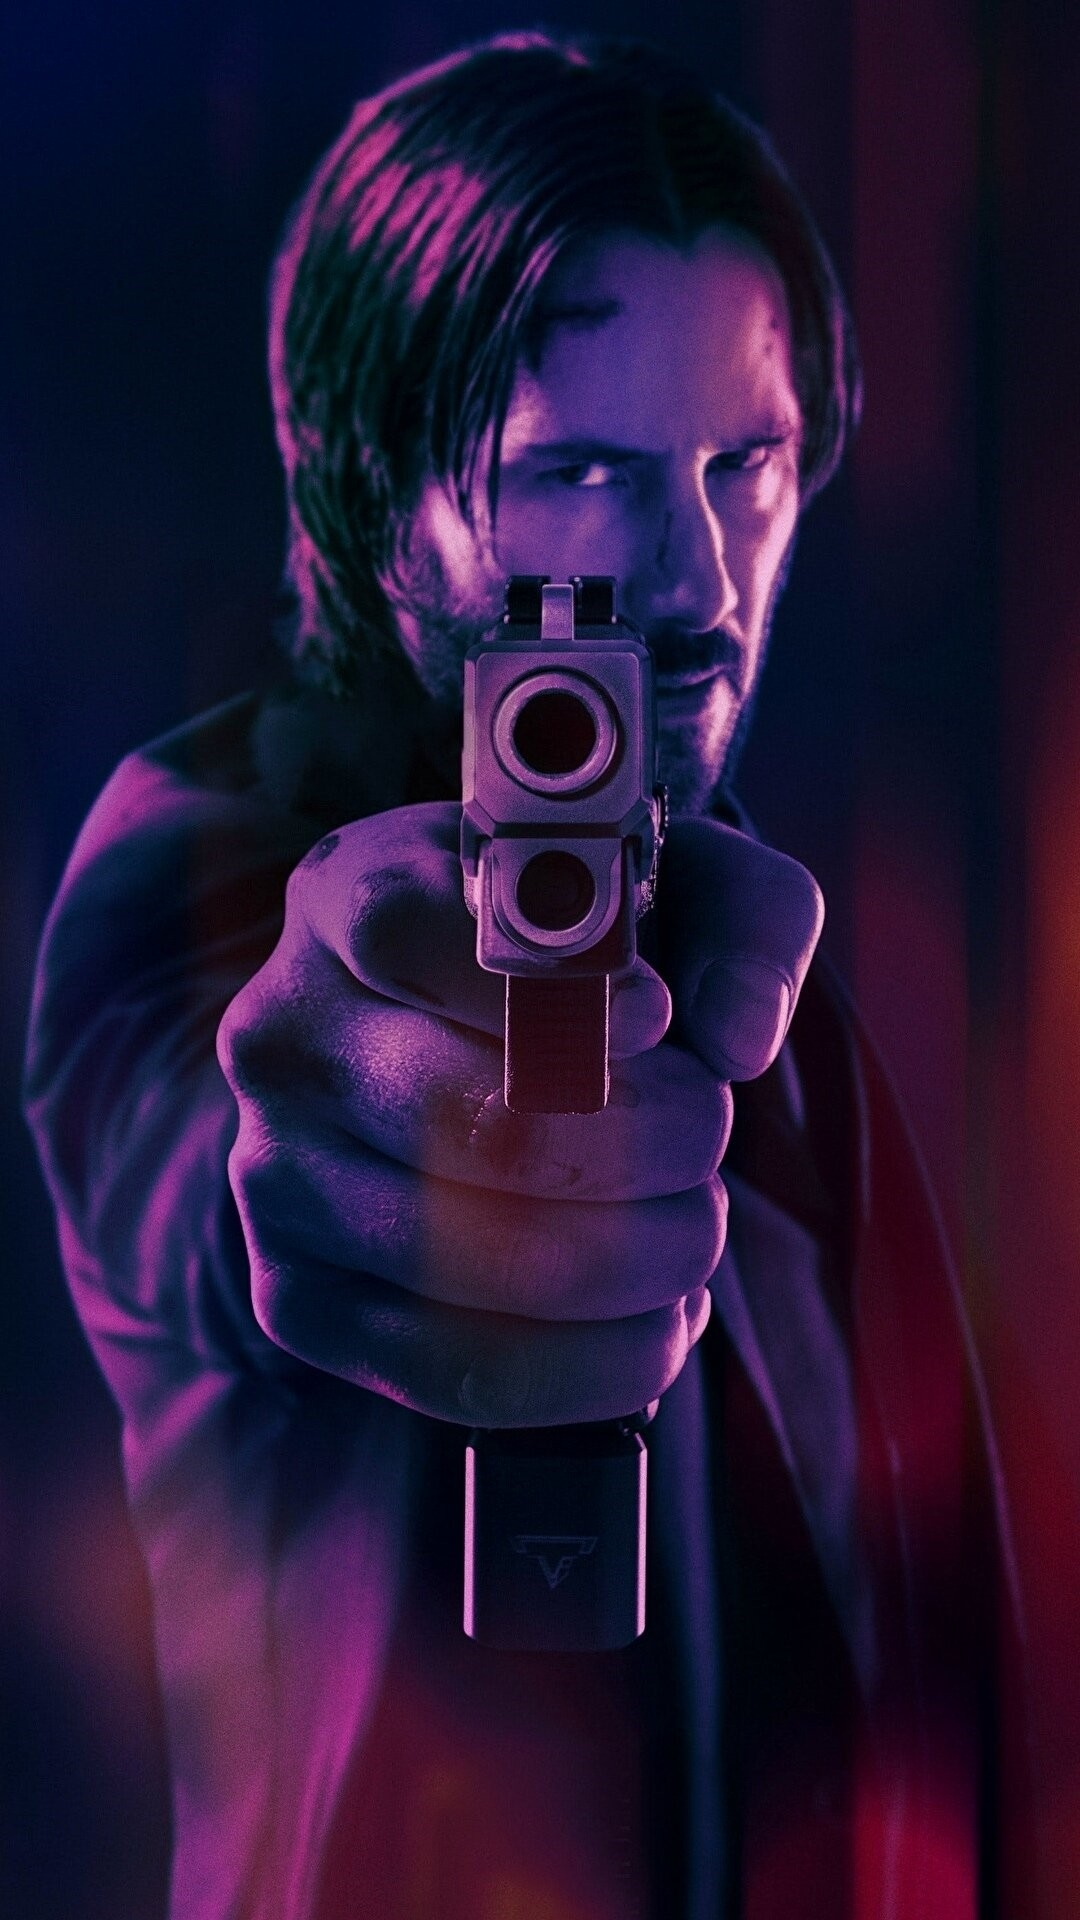 John Wick wallpaper for android